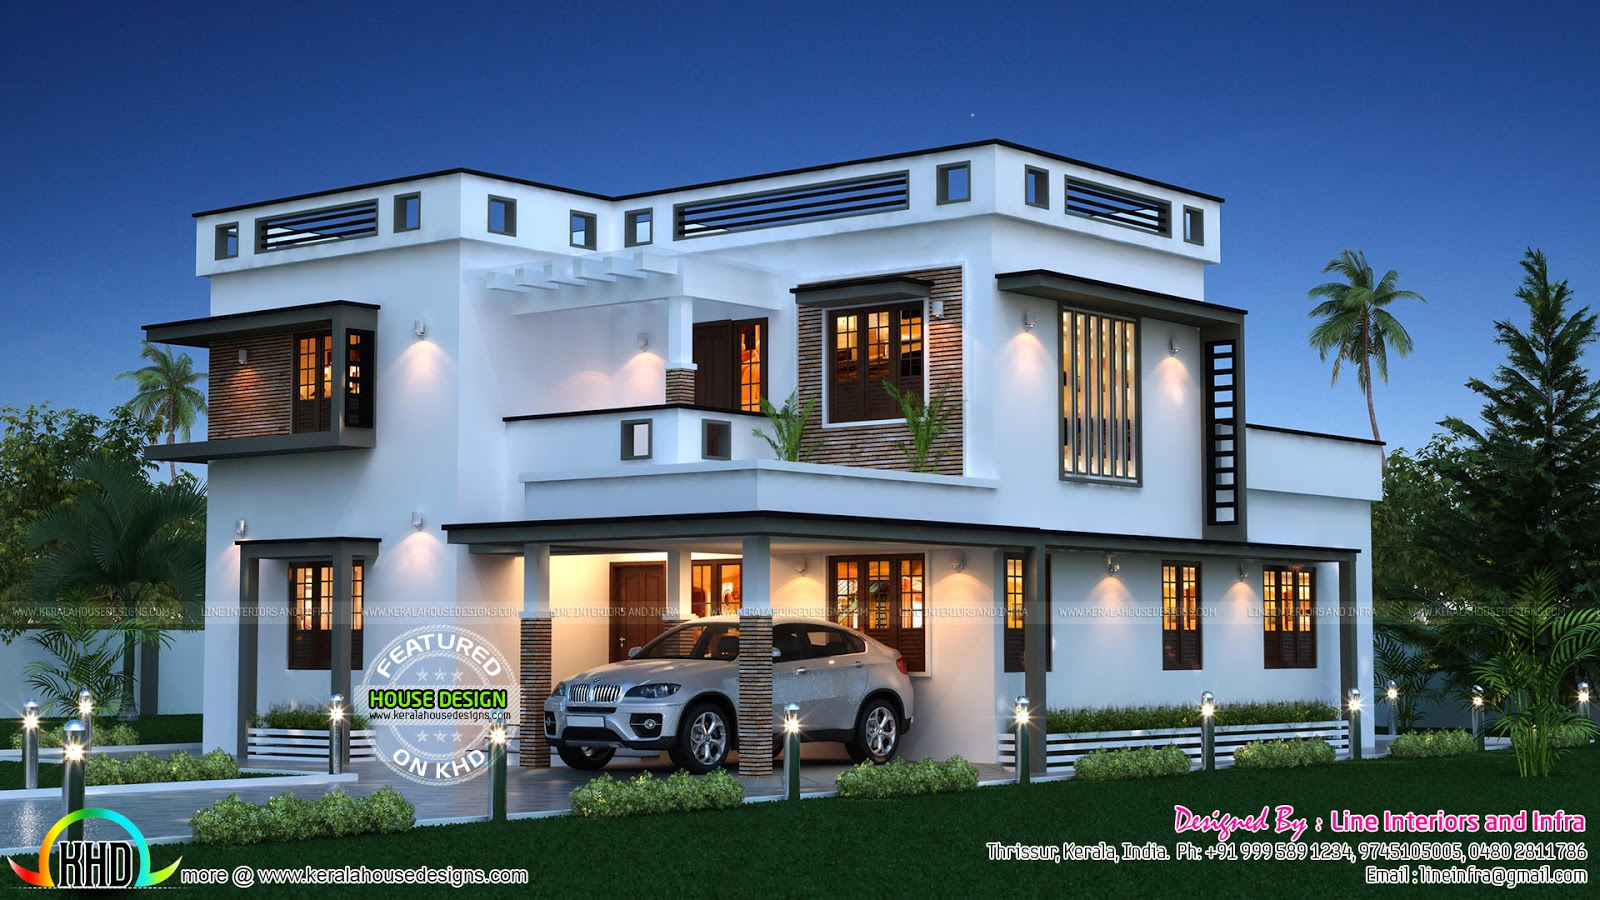 1600 sq feet 149 sq meters modern house plan 90 square meters to square feet